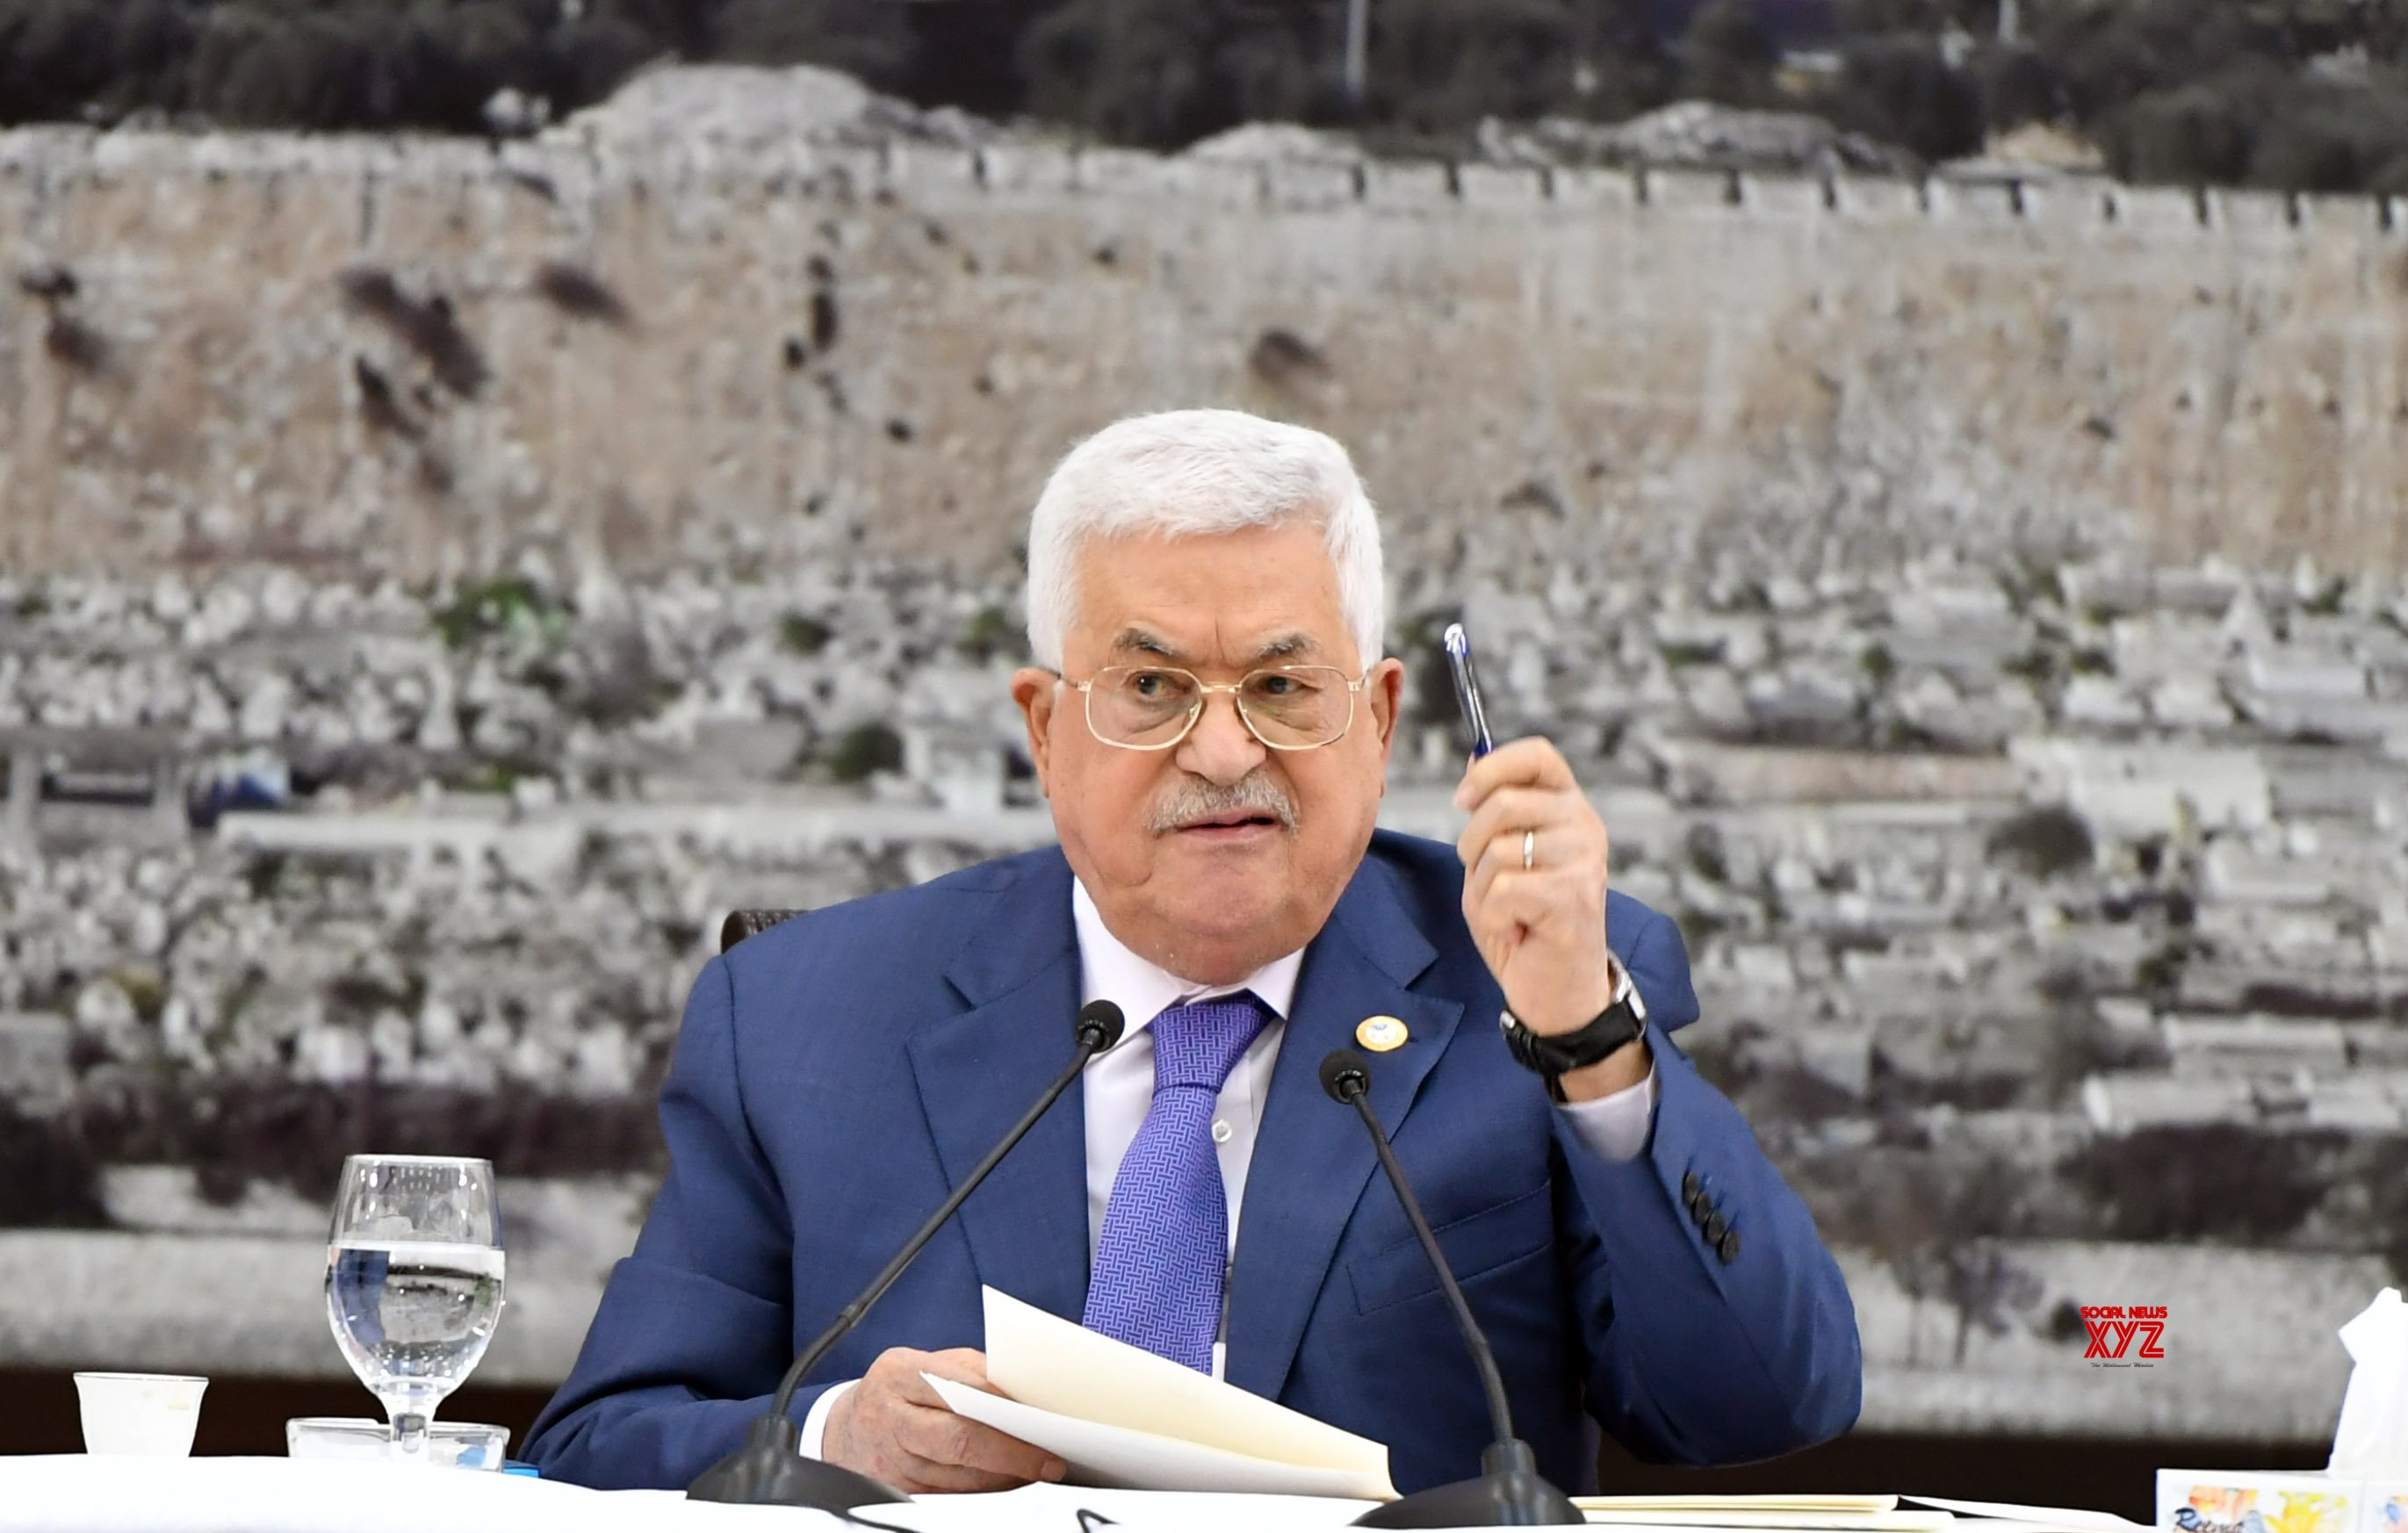 Palestine's Abbas is Fatah's sole candidate for prez polls